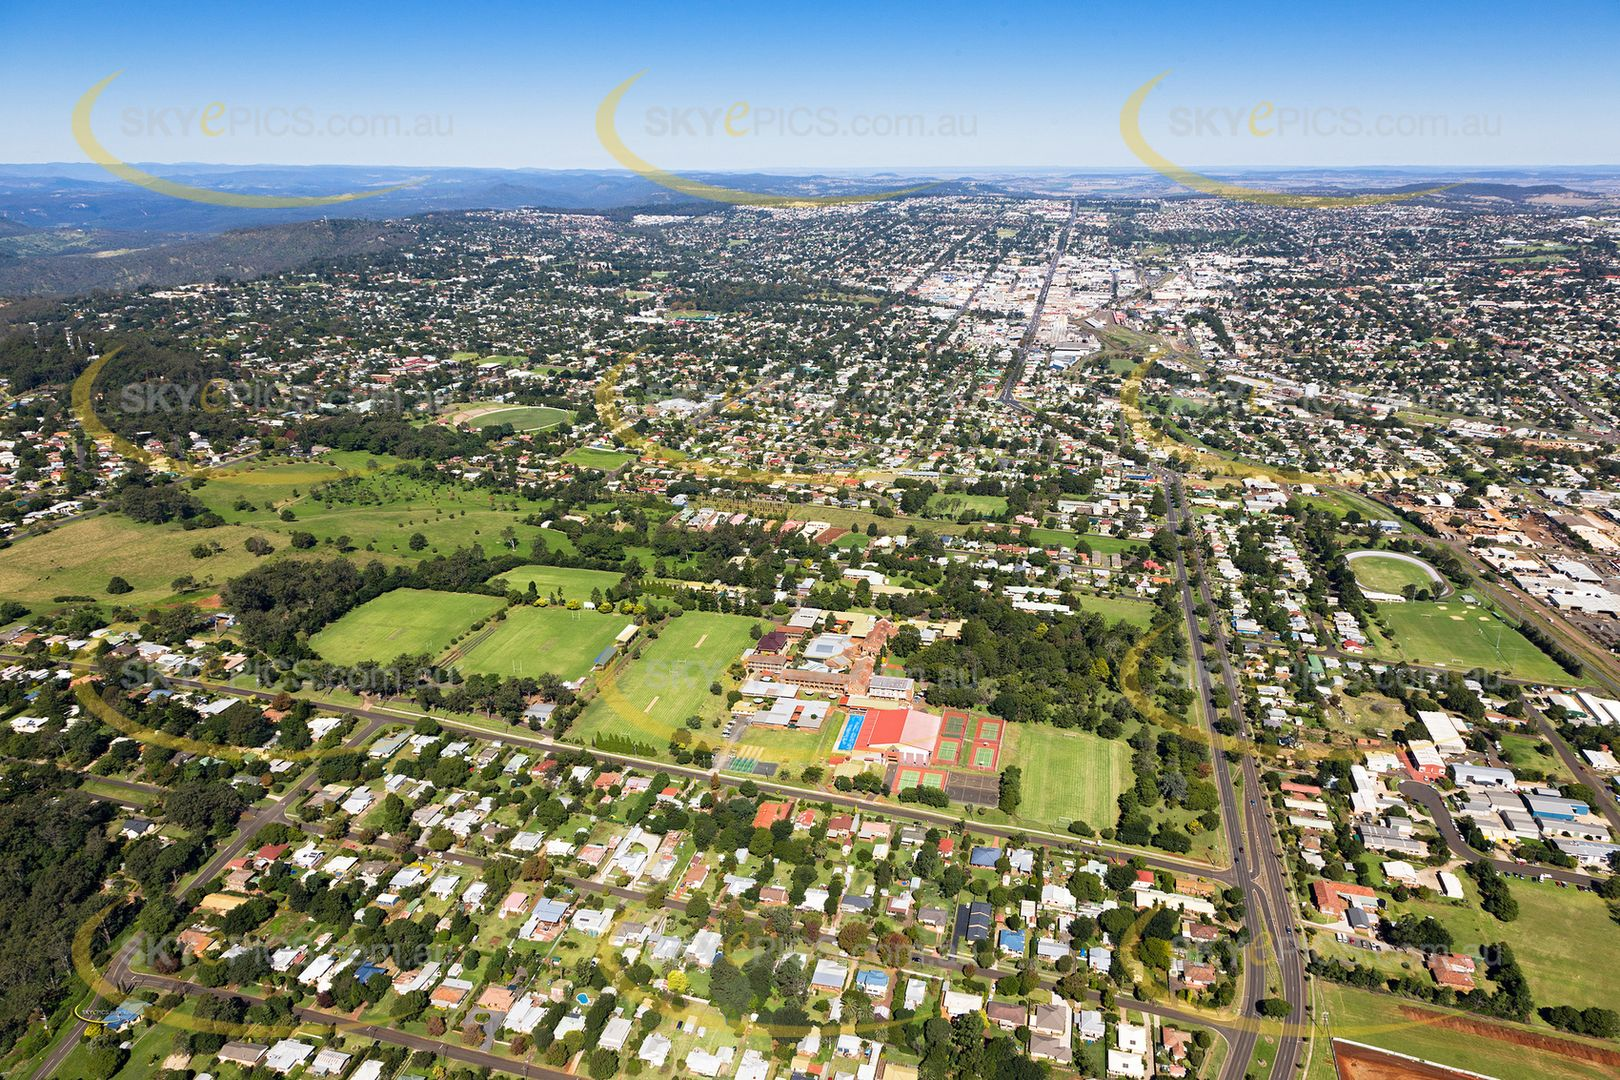 Lot 7/3-19 Pascoe Lane, North Toowoomba QLD 4350, Image 2